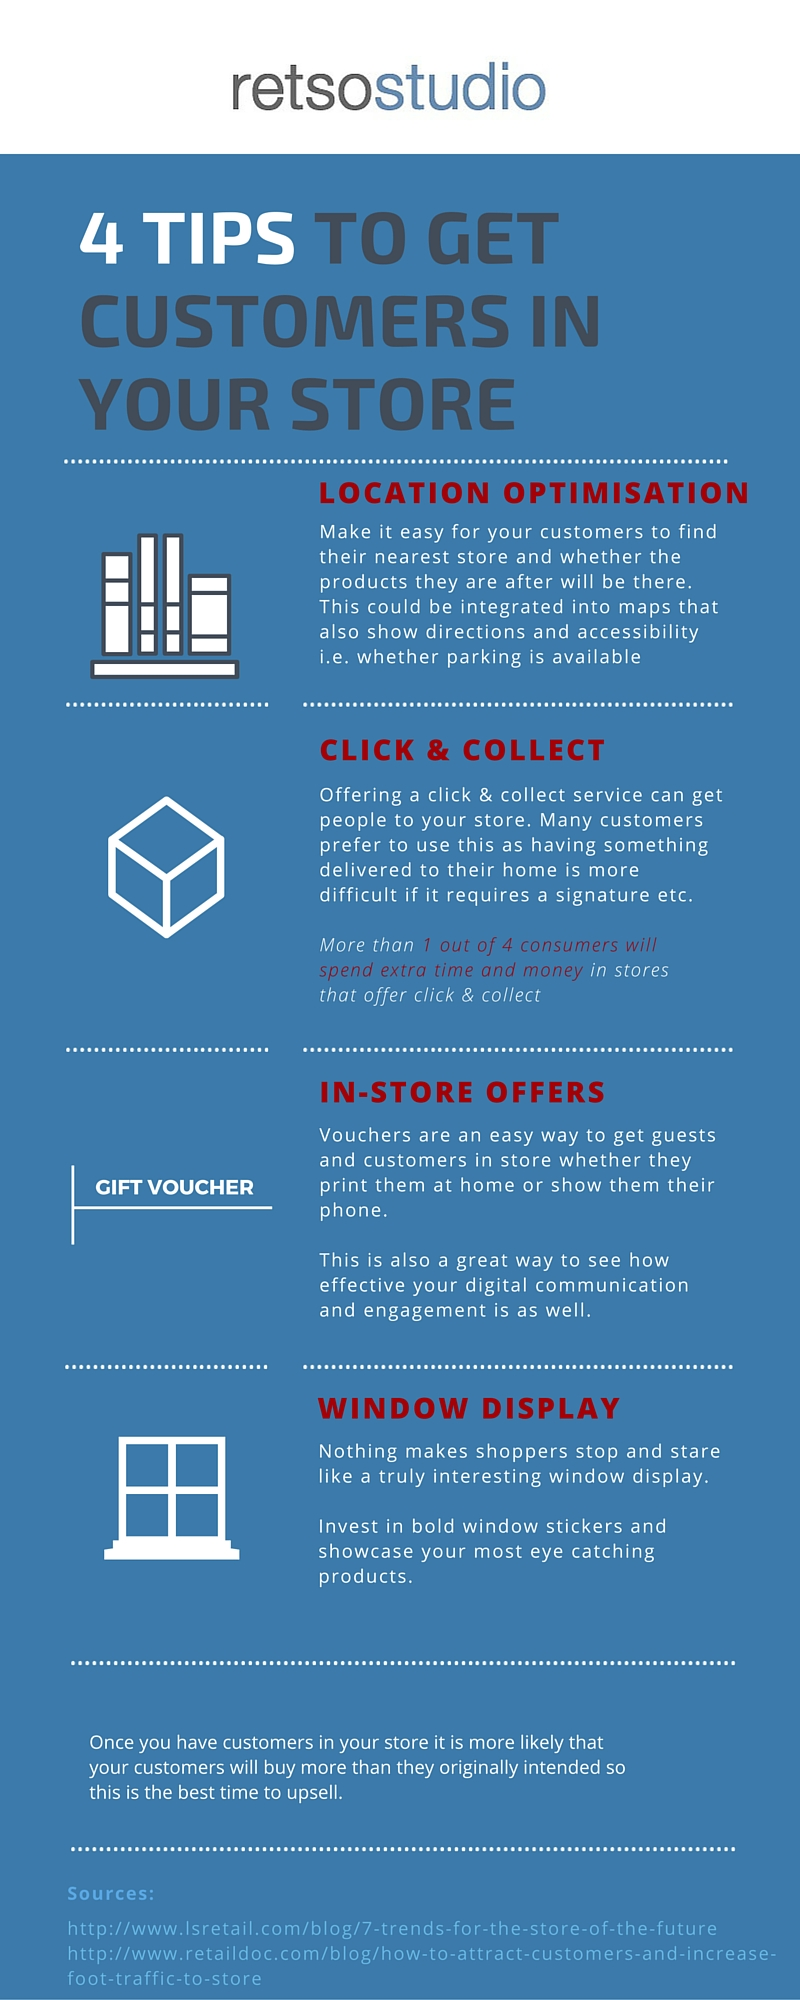 4 Tips To Get Customers To Your Store (Image)